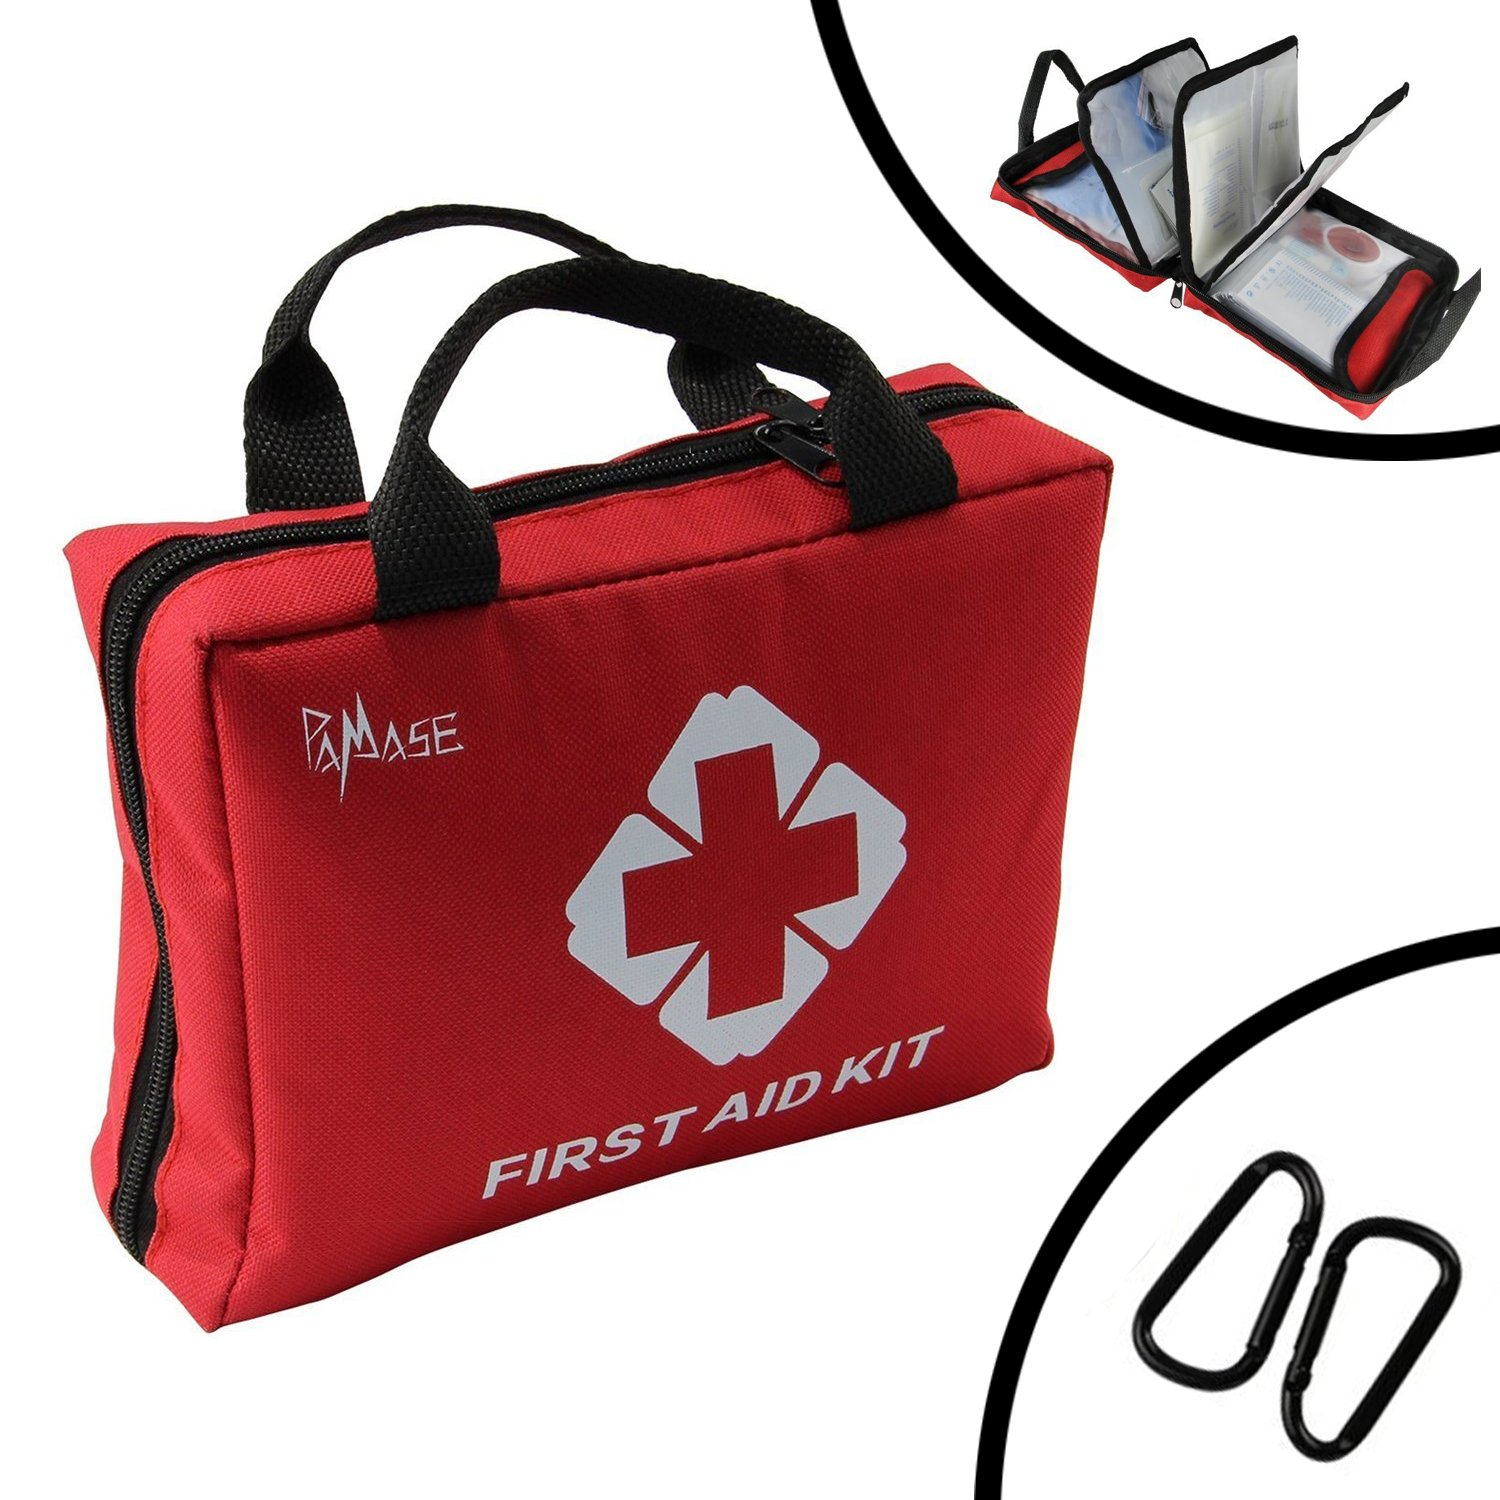 PAMASE First Aid Medical Kit for Survival(123 PCS) - Emergencies Lightweight Compact Bag for Car,Home,Office,Sports,Travel,Hiking